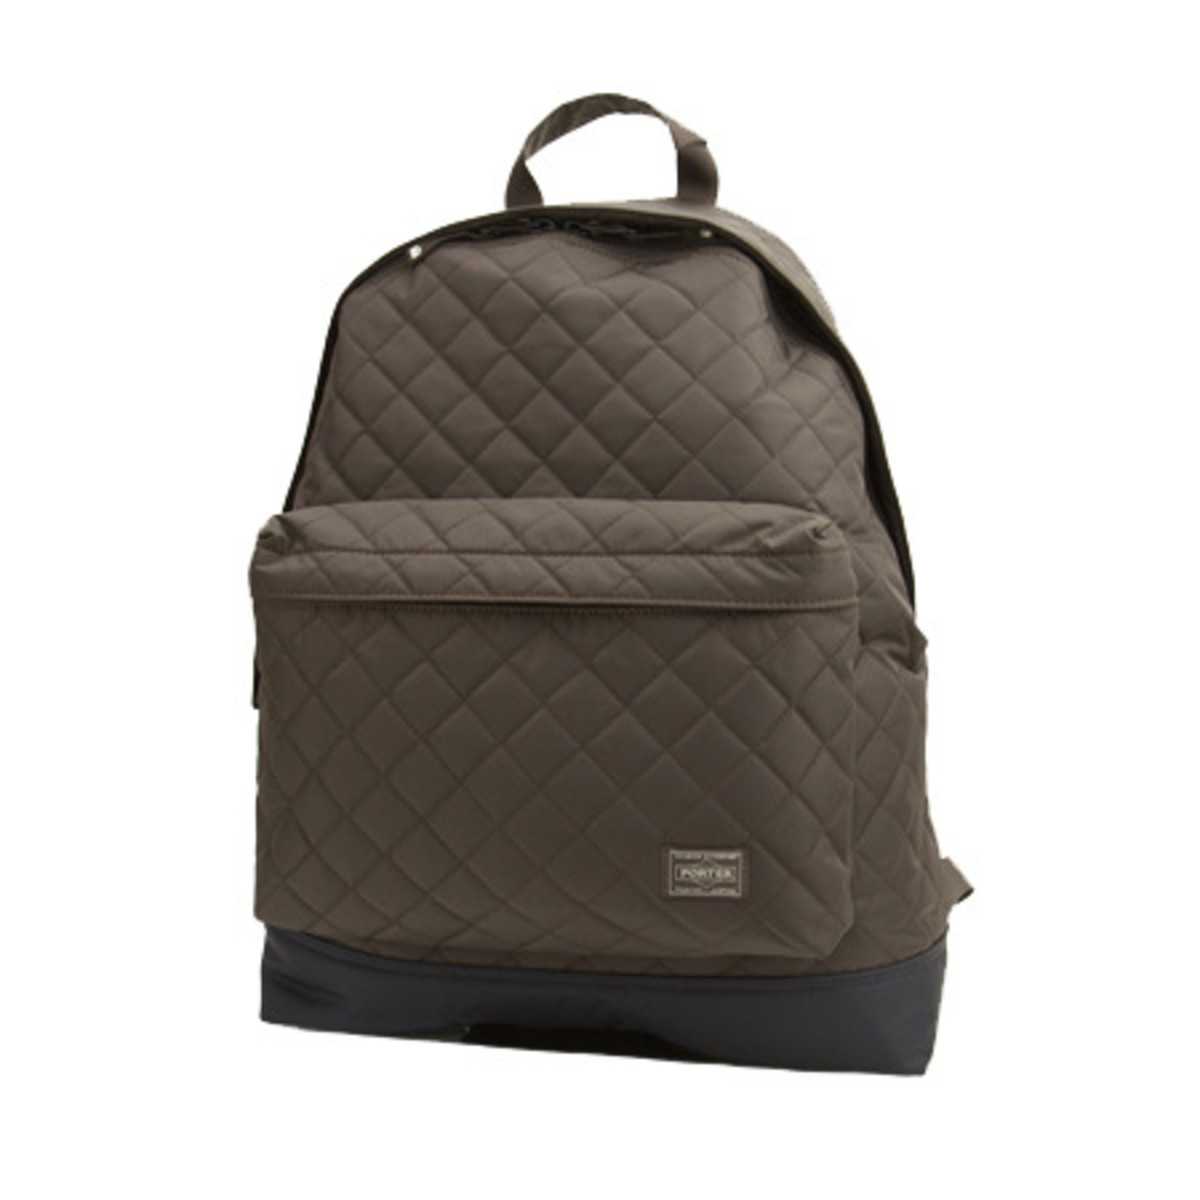 Two Tone Day Pack